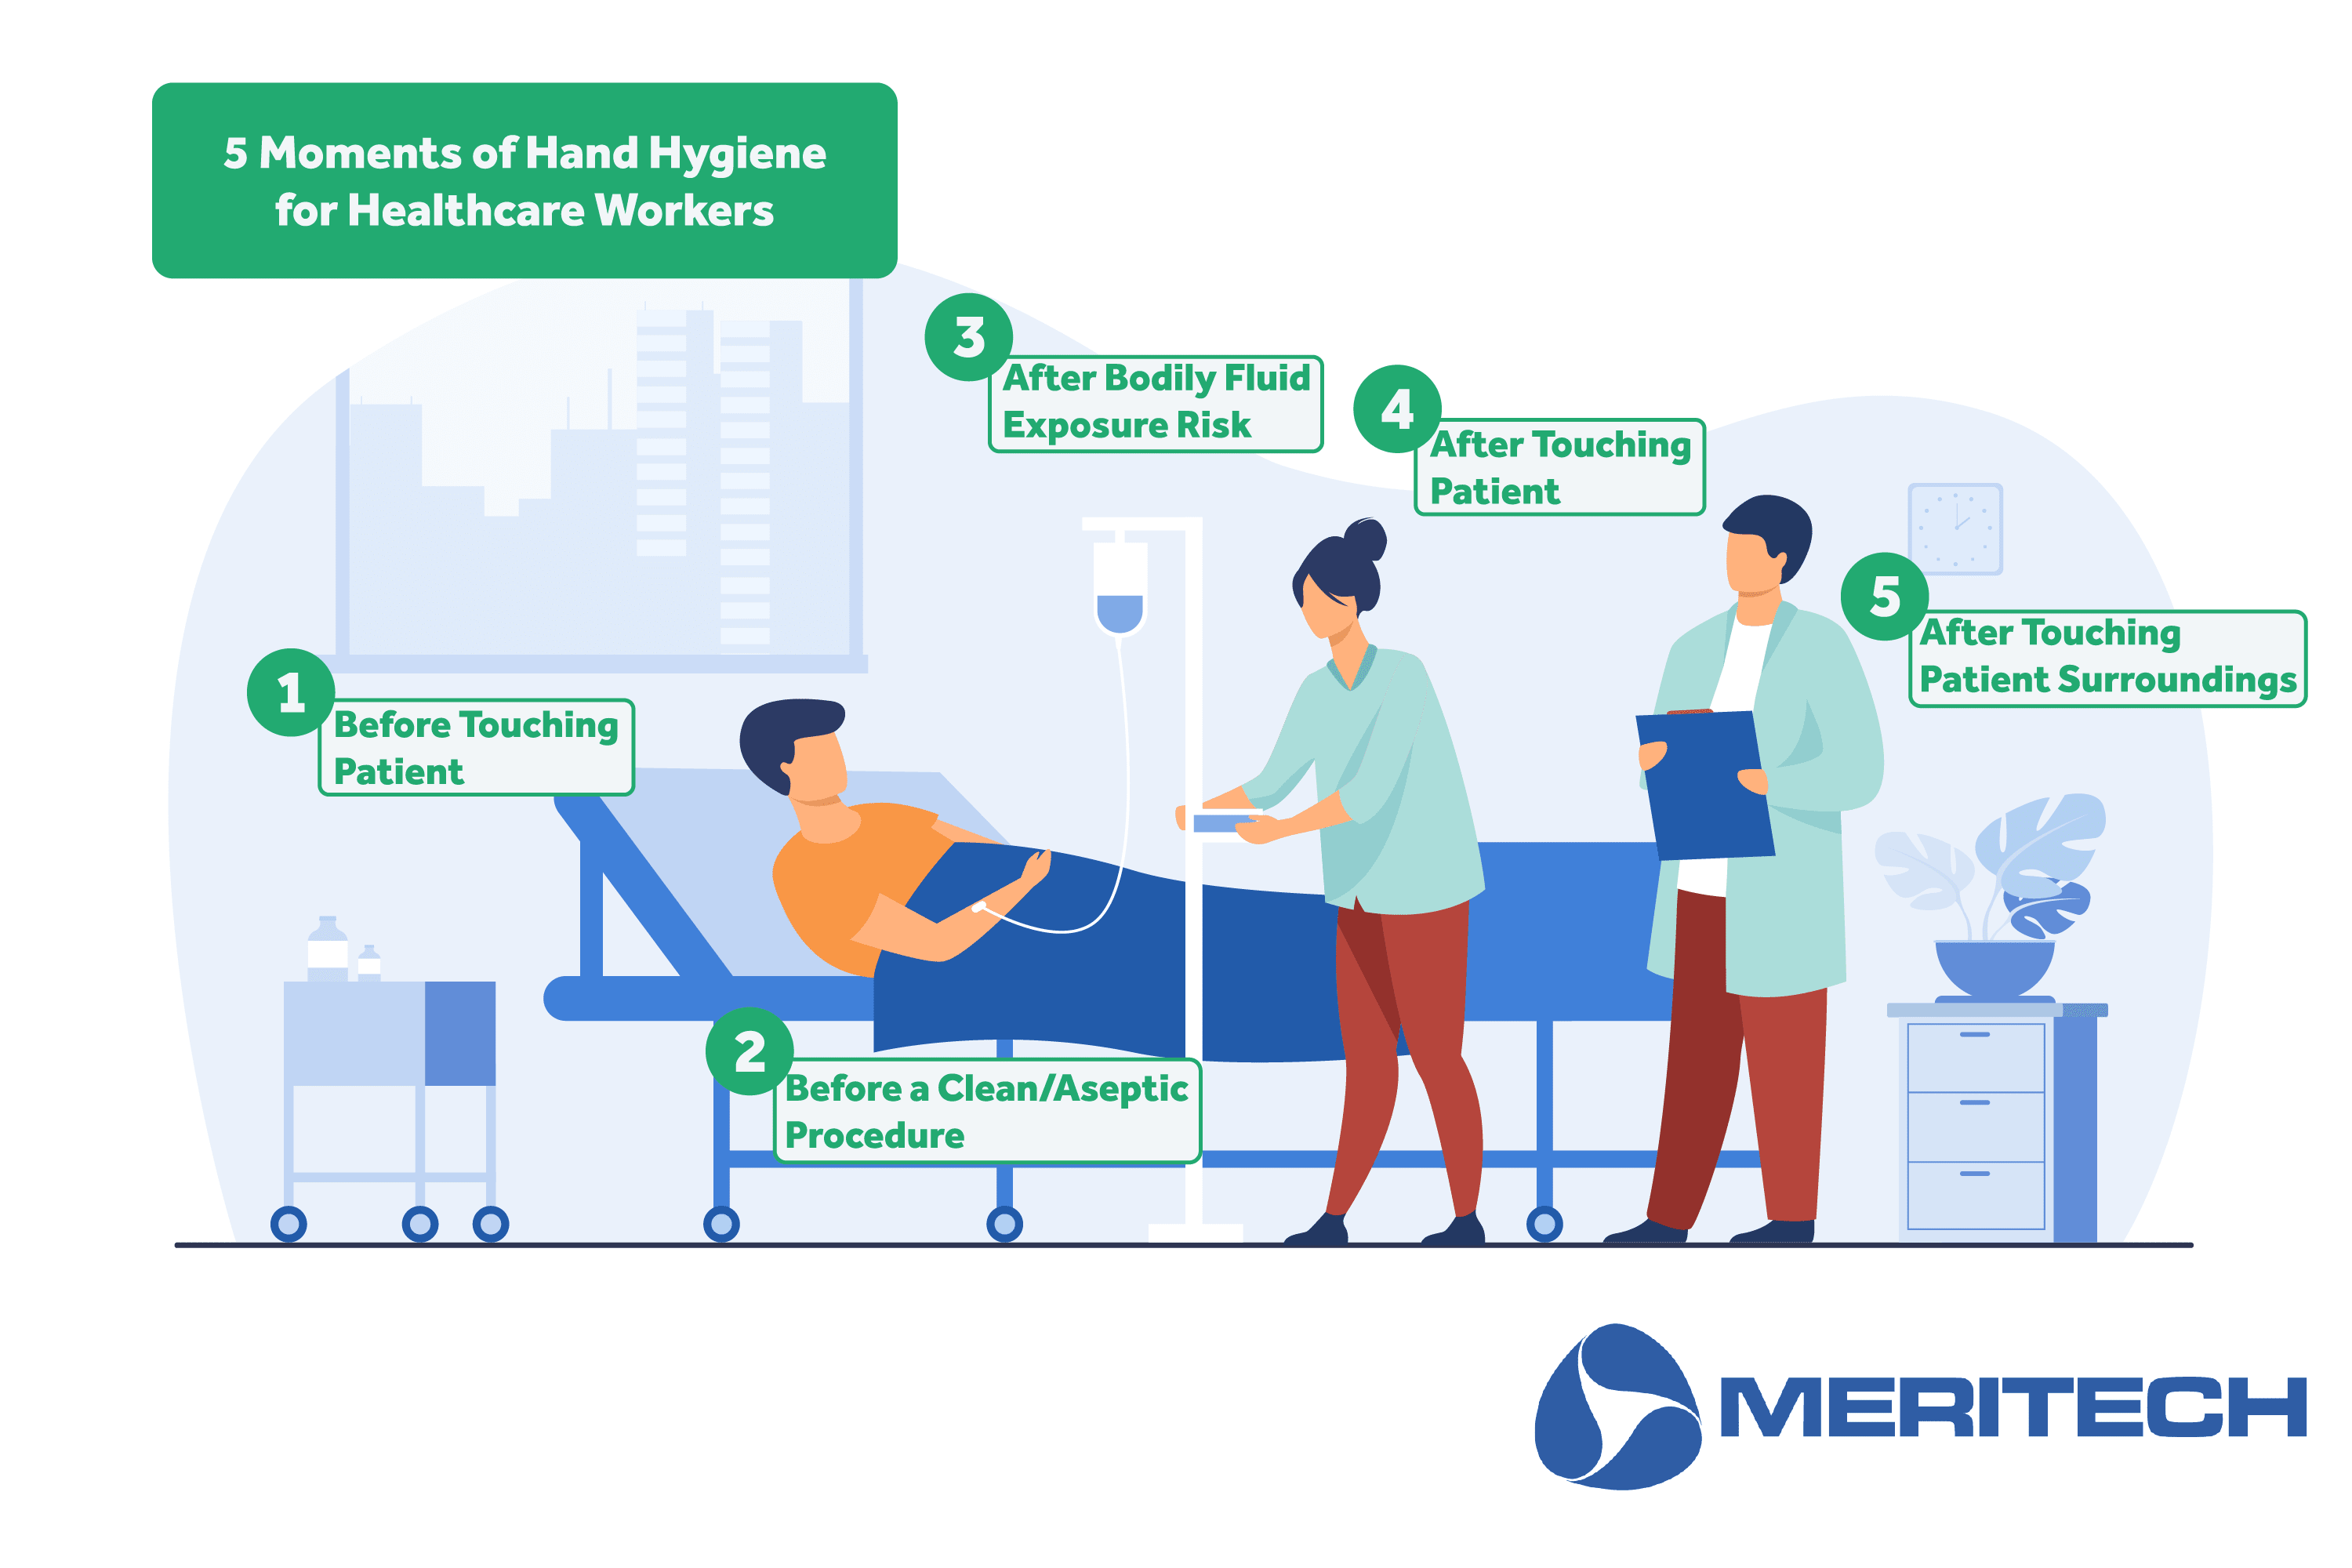 5 Moments of Hand Hygiene in Healthcare Poster from Meritech